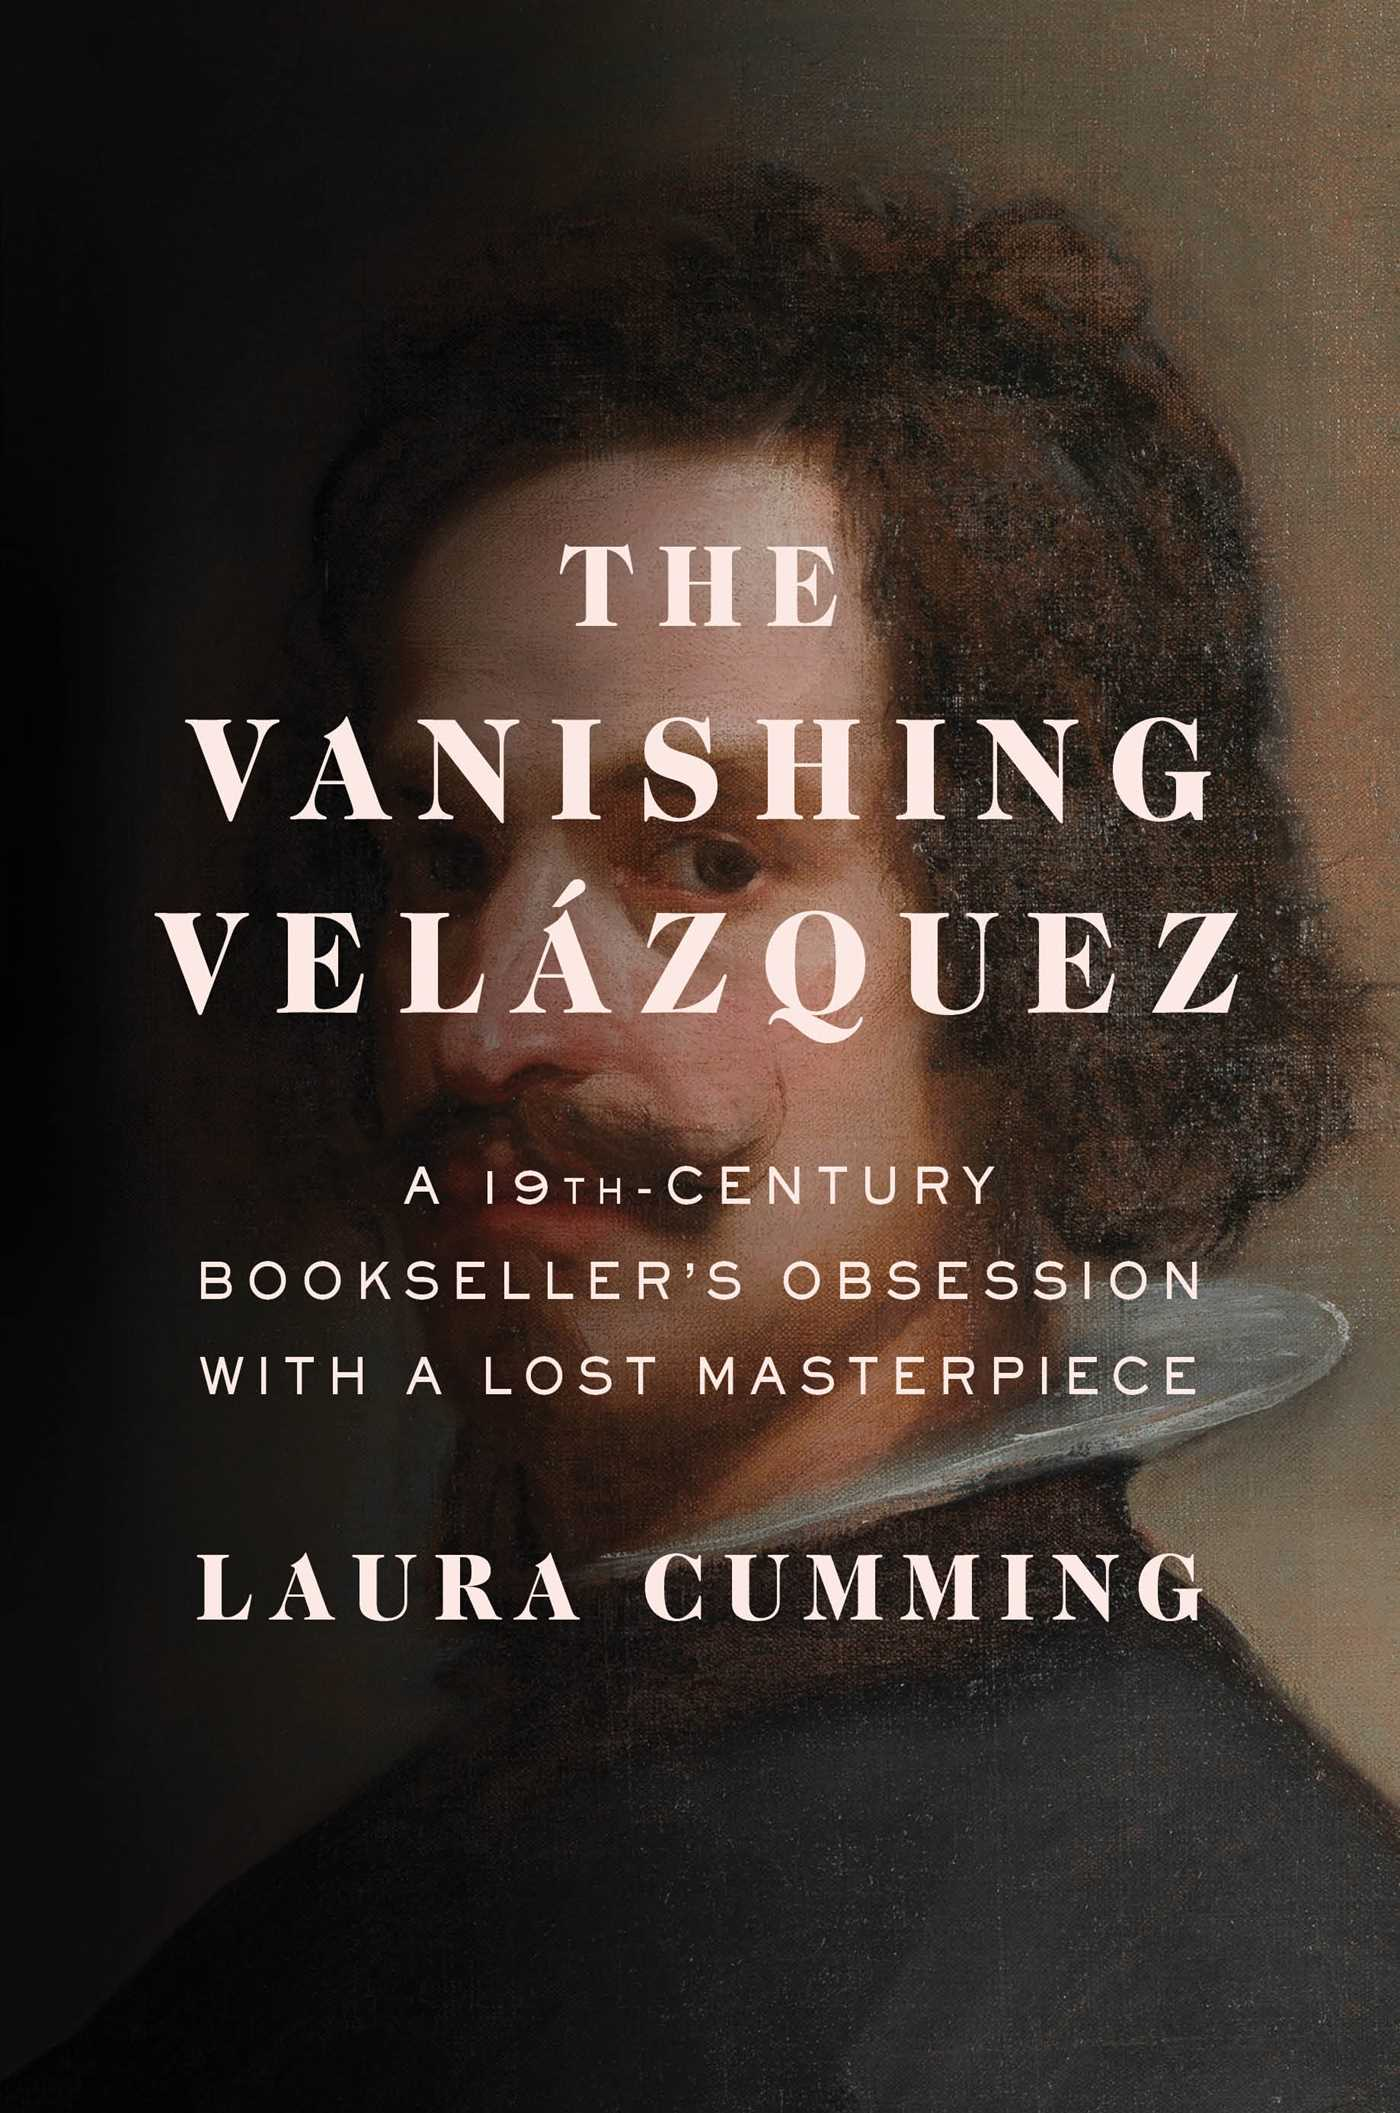 The vanishing velazquez 9781476762159 hr